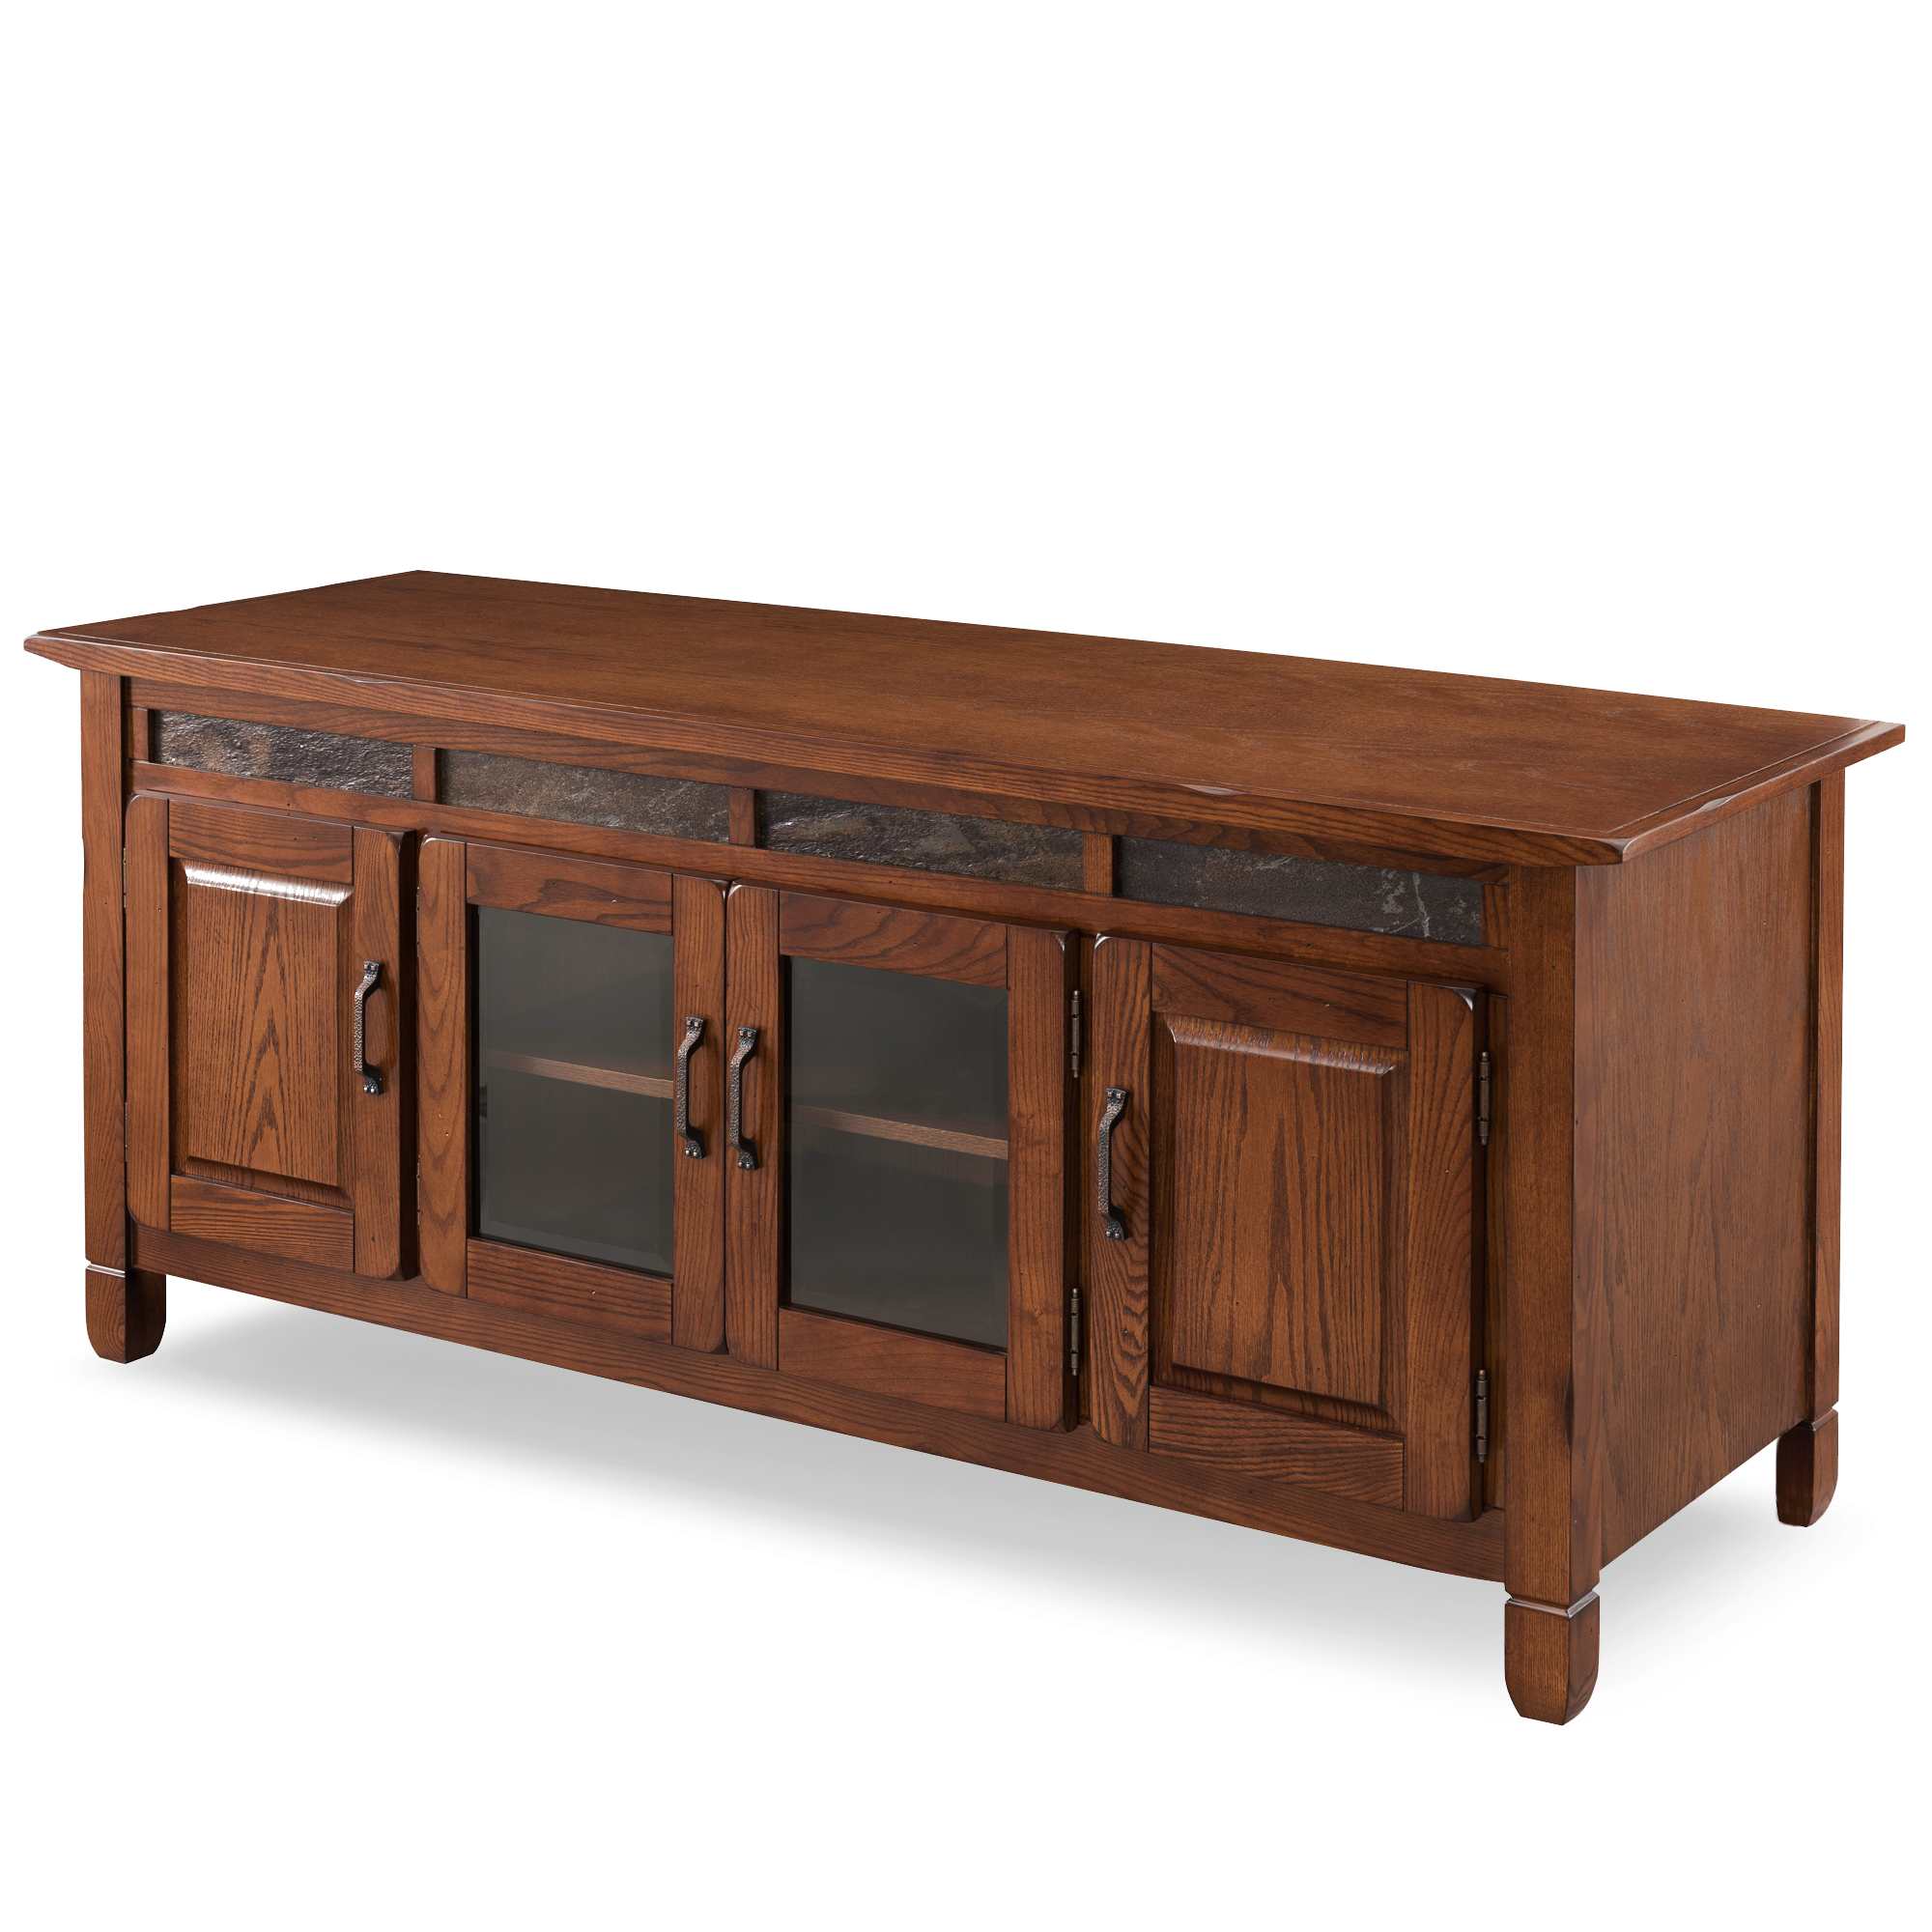 """Most Recent Leick Home 60"""" Tv Stand With Slate Tiles For Tv's Up To 65 Within Kasen Tv Stands For Tvs Up To 60"""" (View 24 of 25)"""